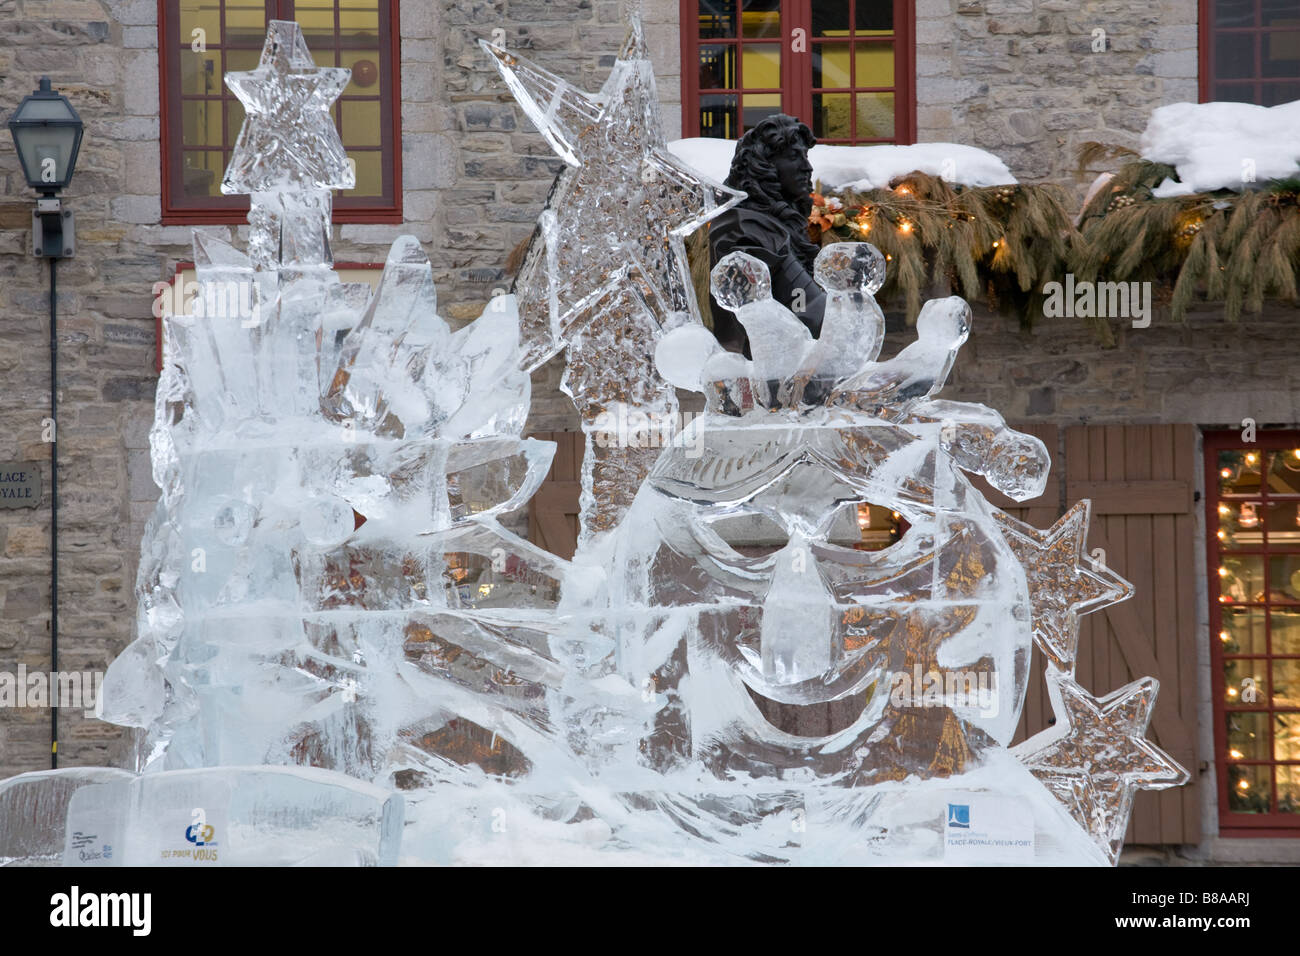 Ice carving Place de Paris Old Quebec City Canada - Stock Image